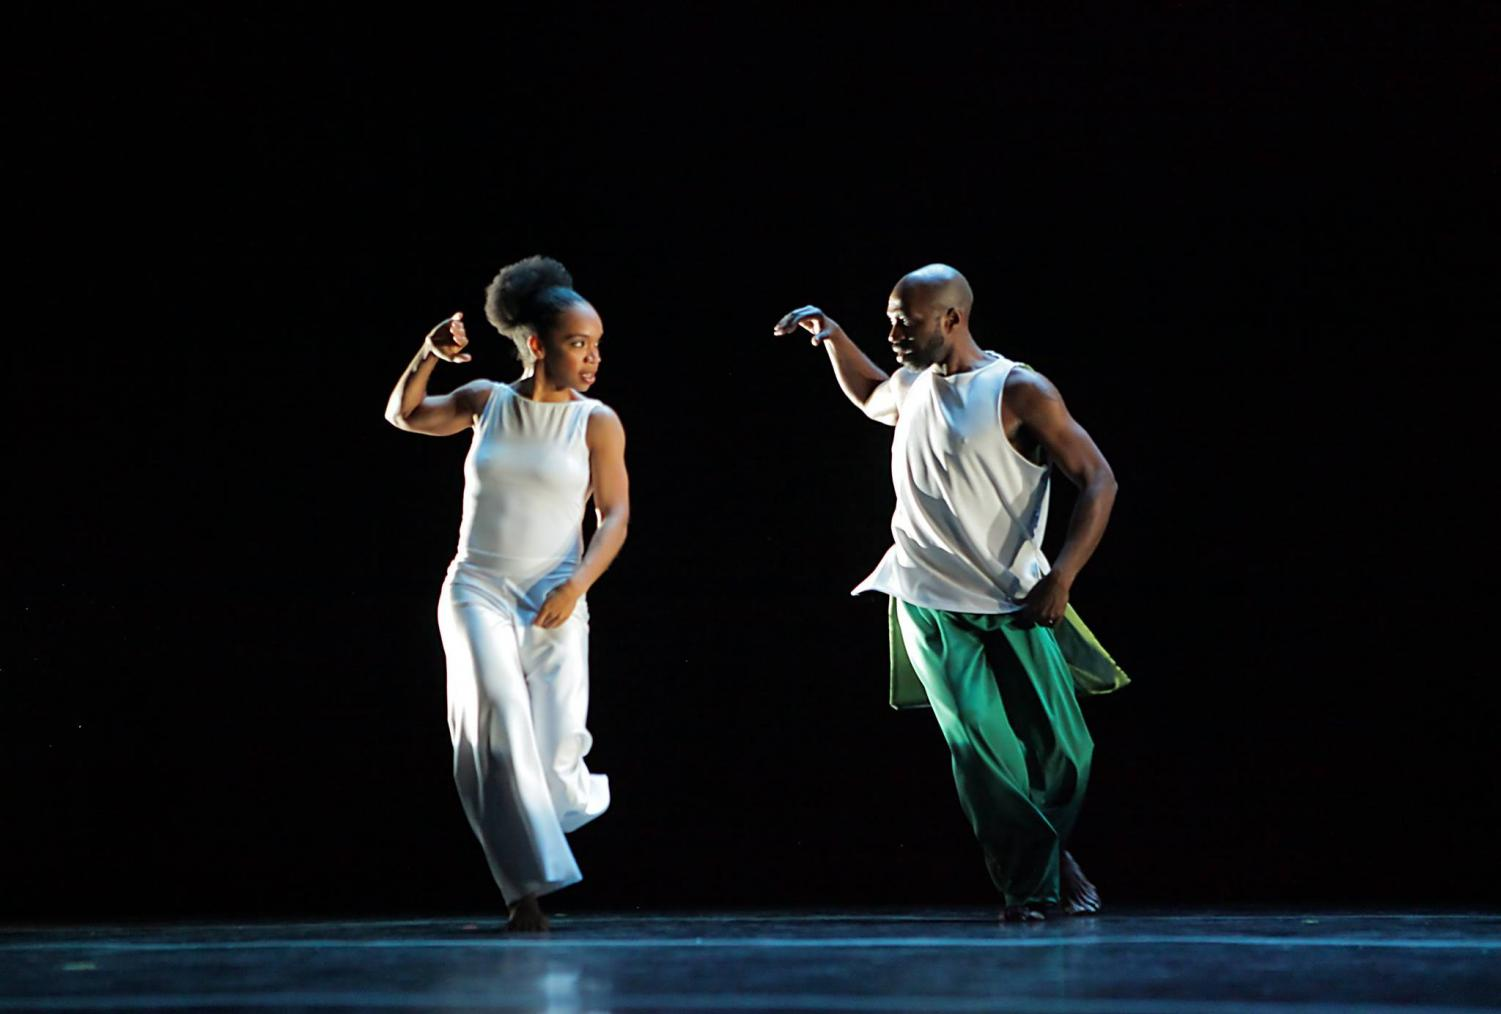 Dancers Annique Roberts and Kevin Brown perform a duet together.